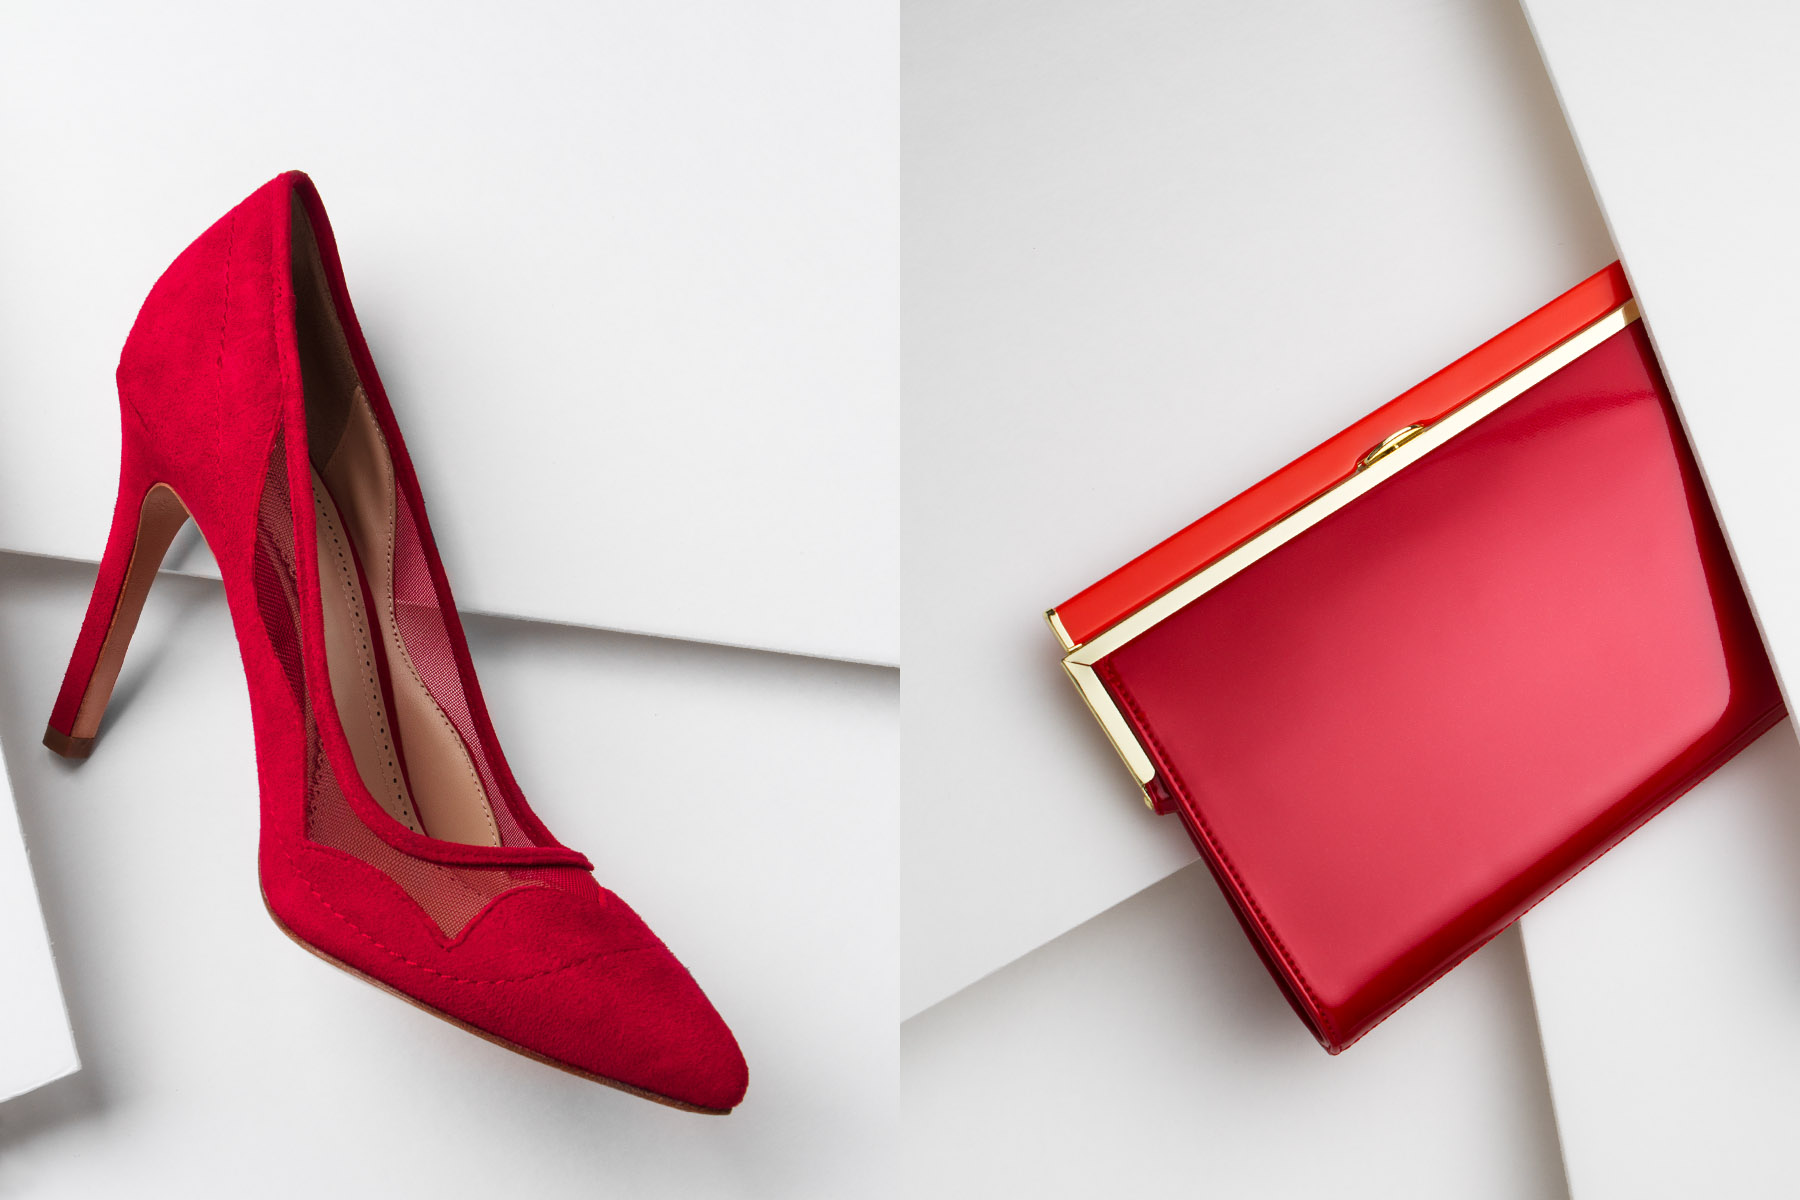 red-shoe-purse-gabetoth.jpg